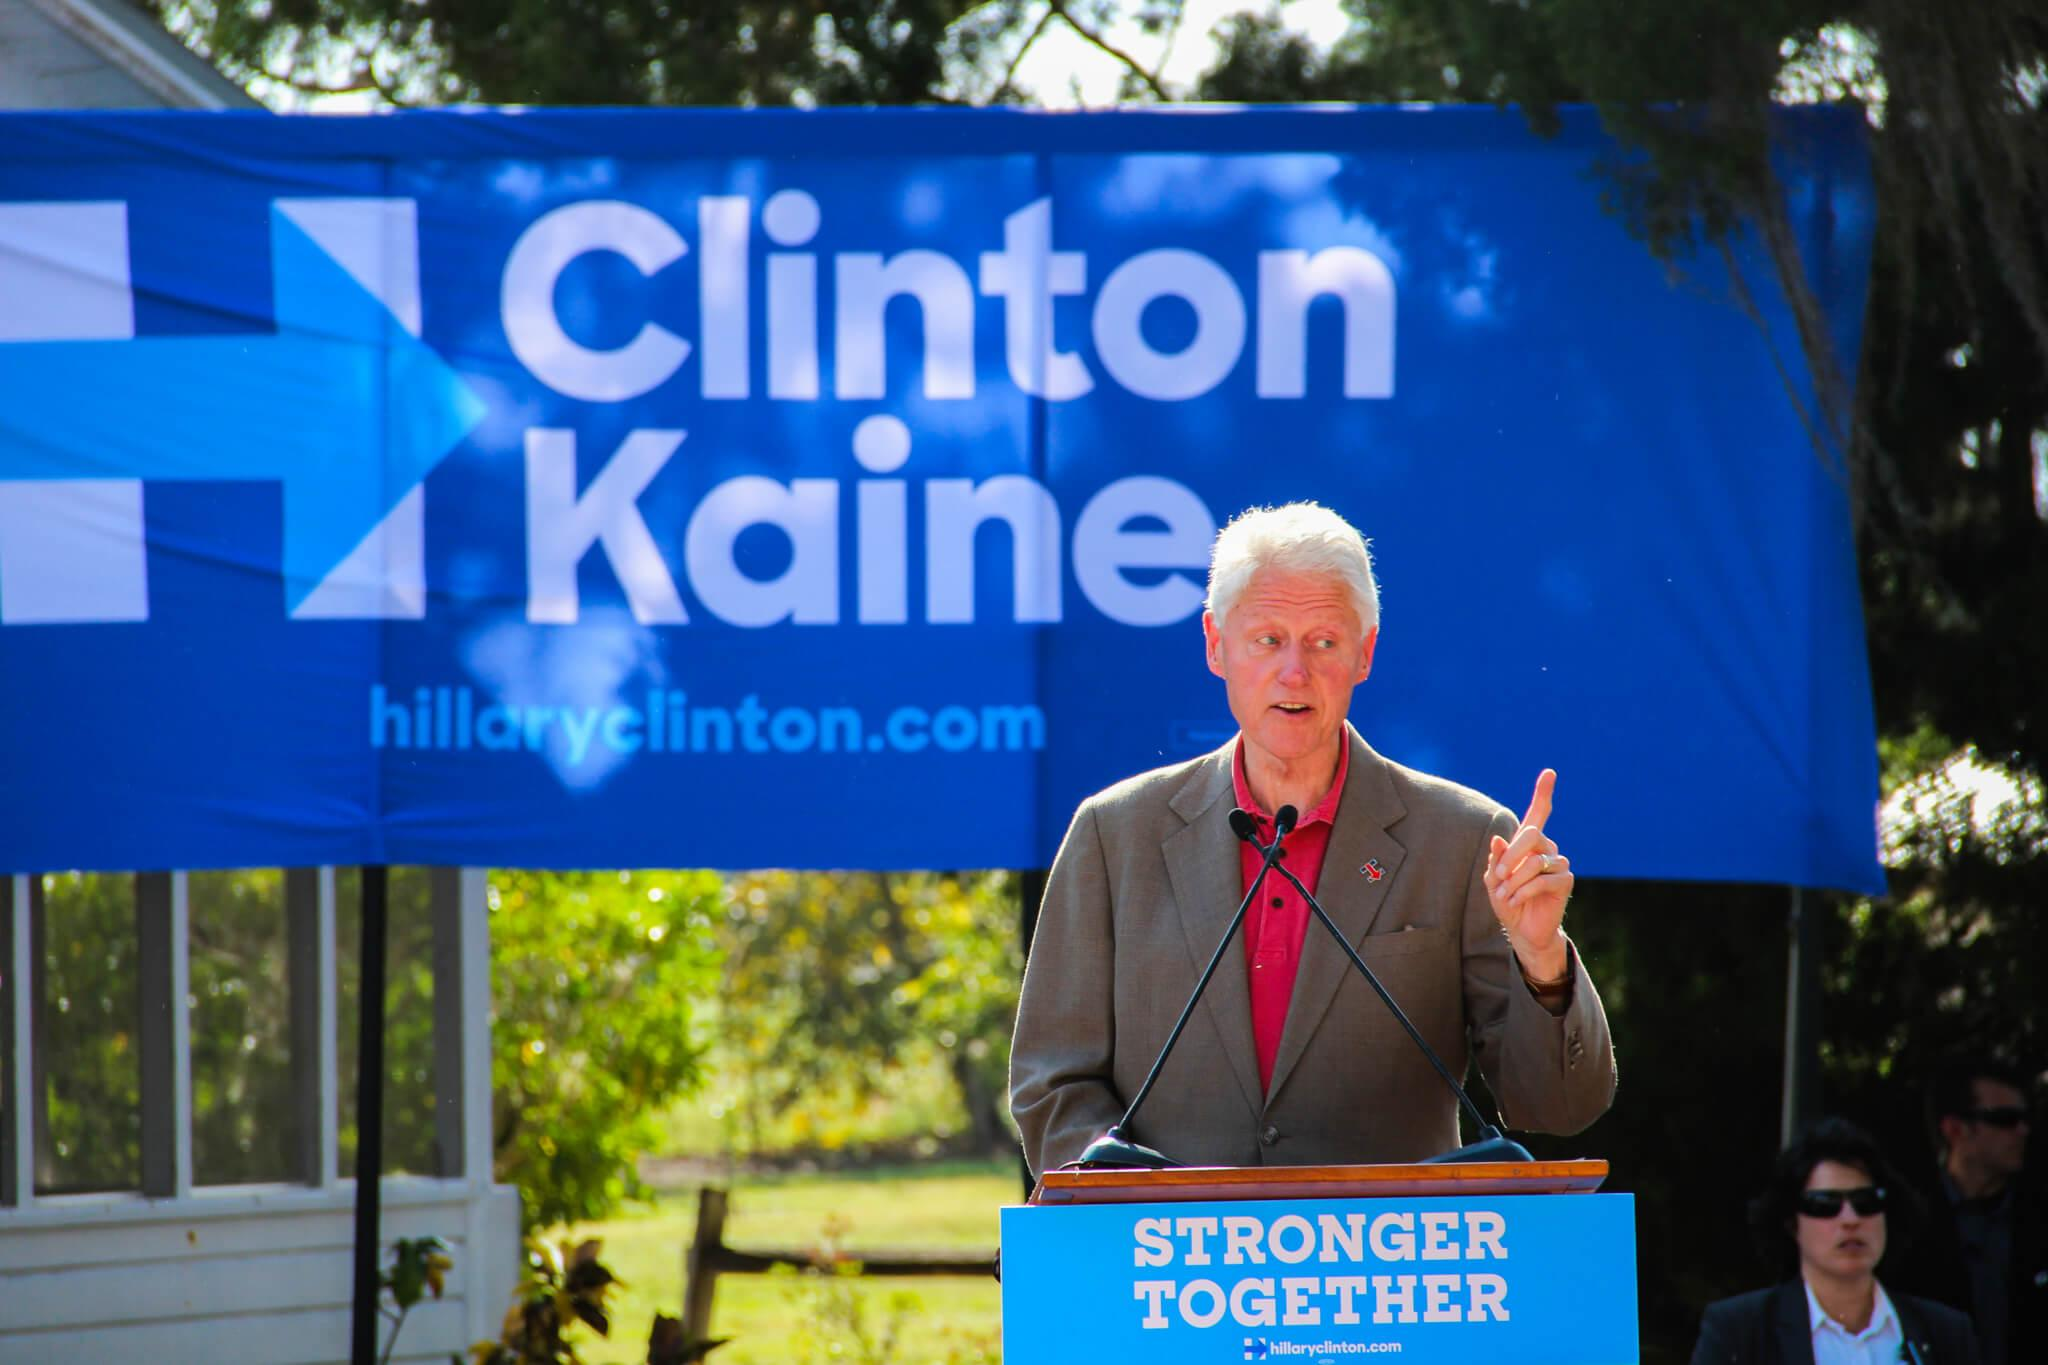 Former President Bill Clinton campaigns for Clinton-Kaine in Immokalee